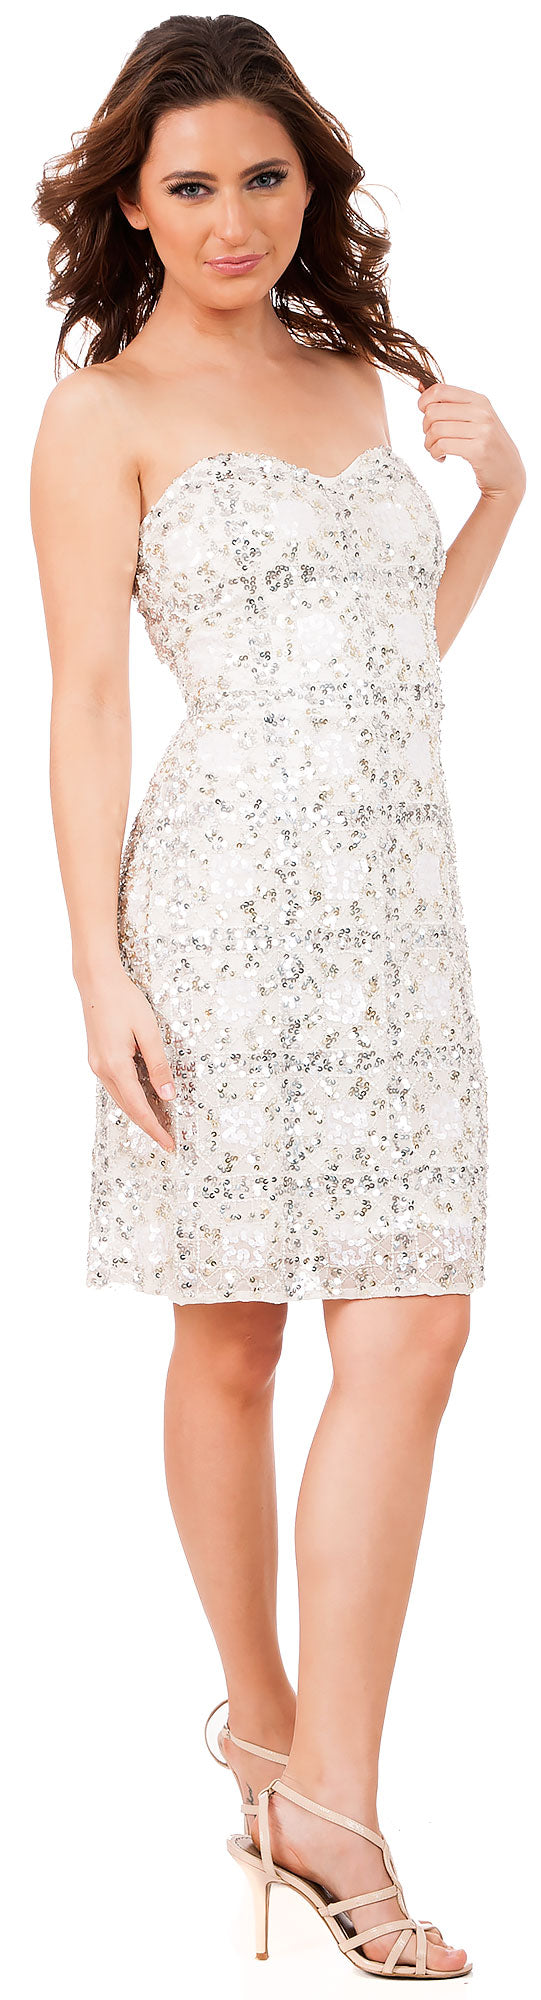 Image of Strapless Fully Beaded Short Prom Homecoming Dress in Ivory/Silver